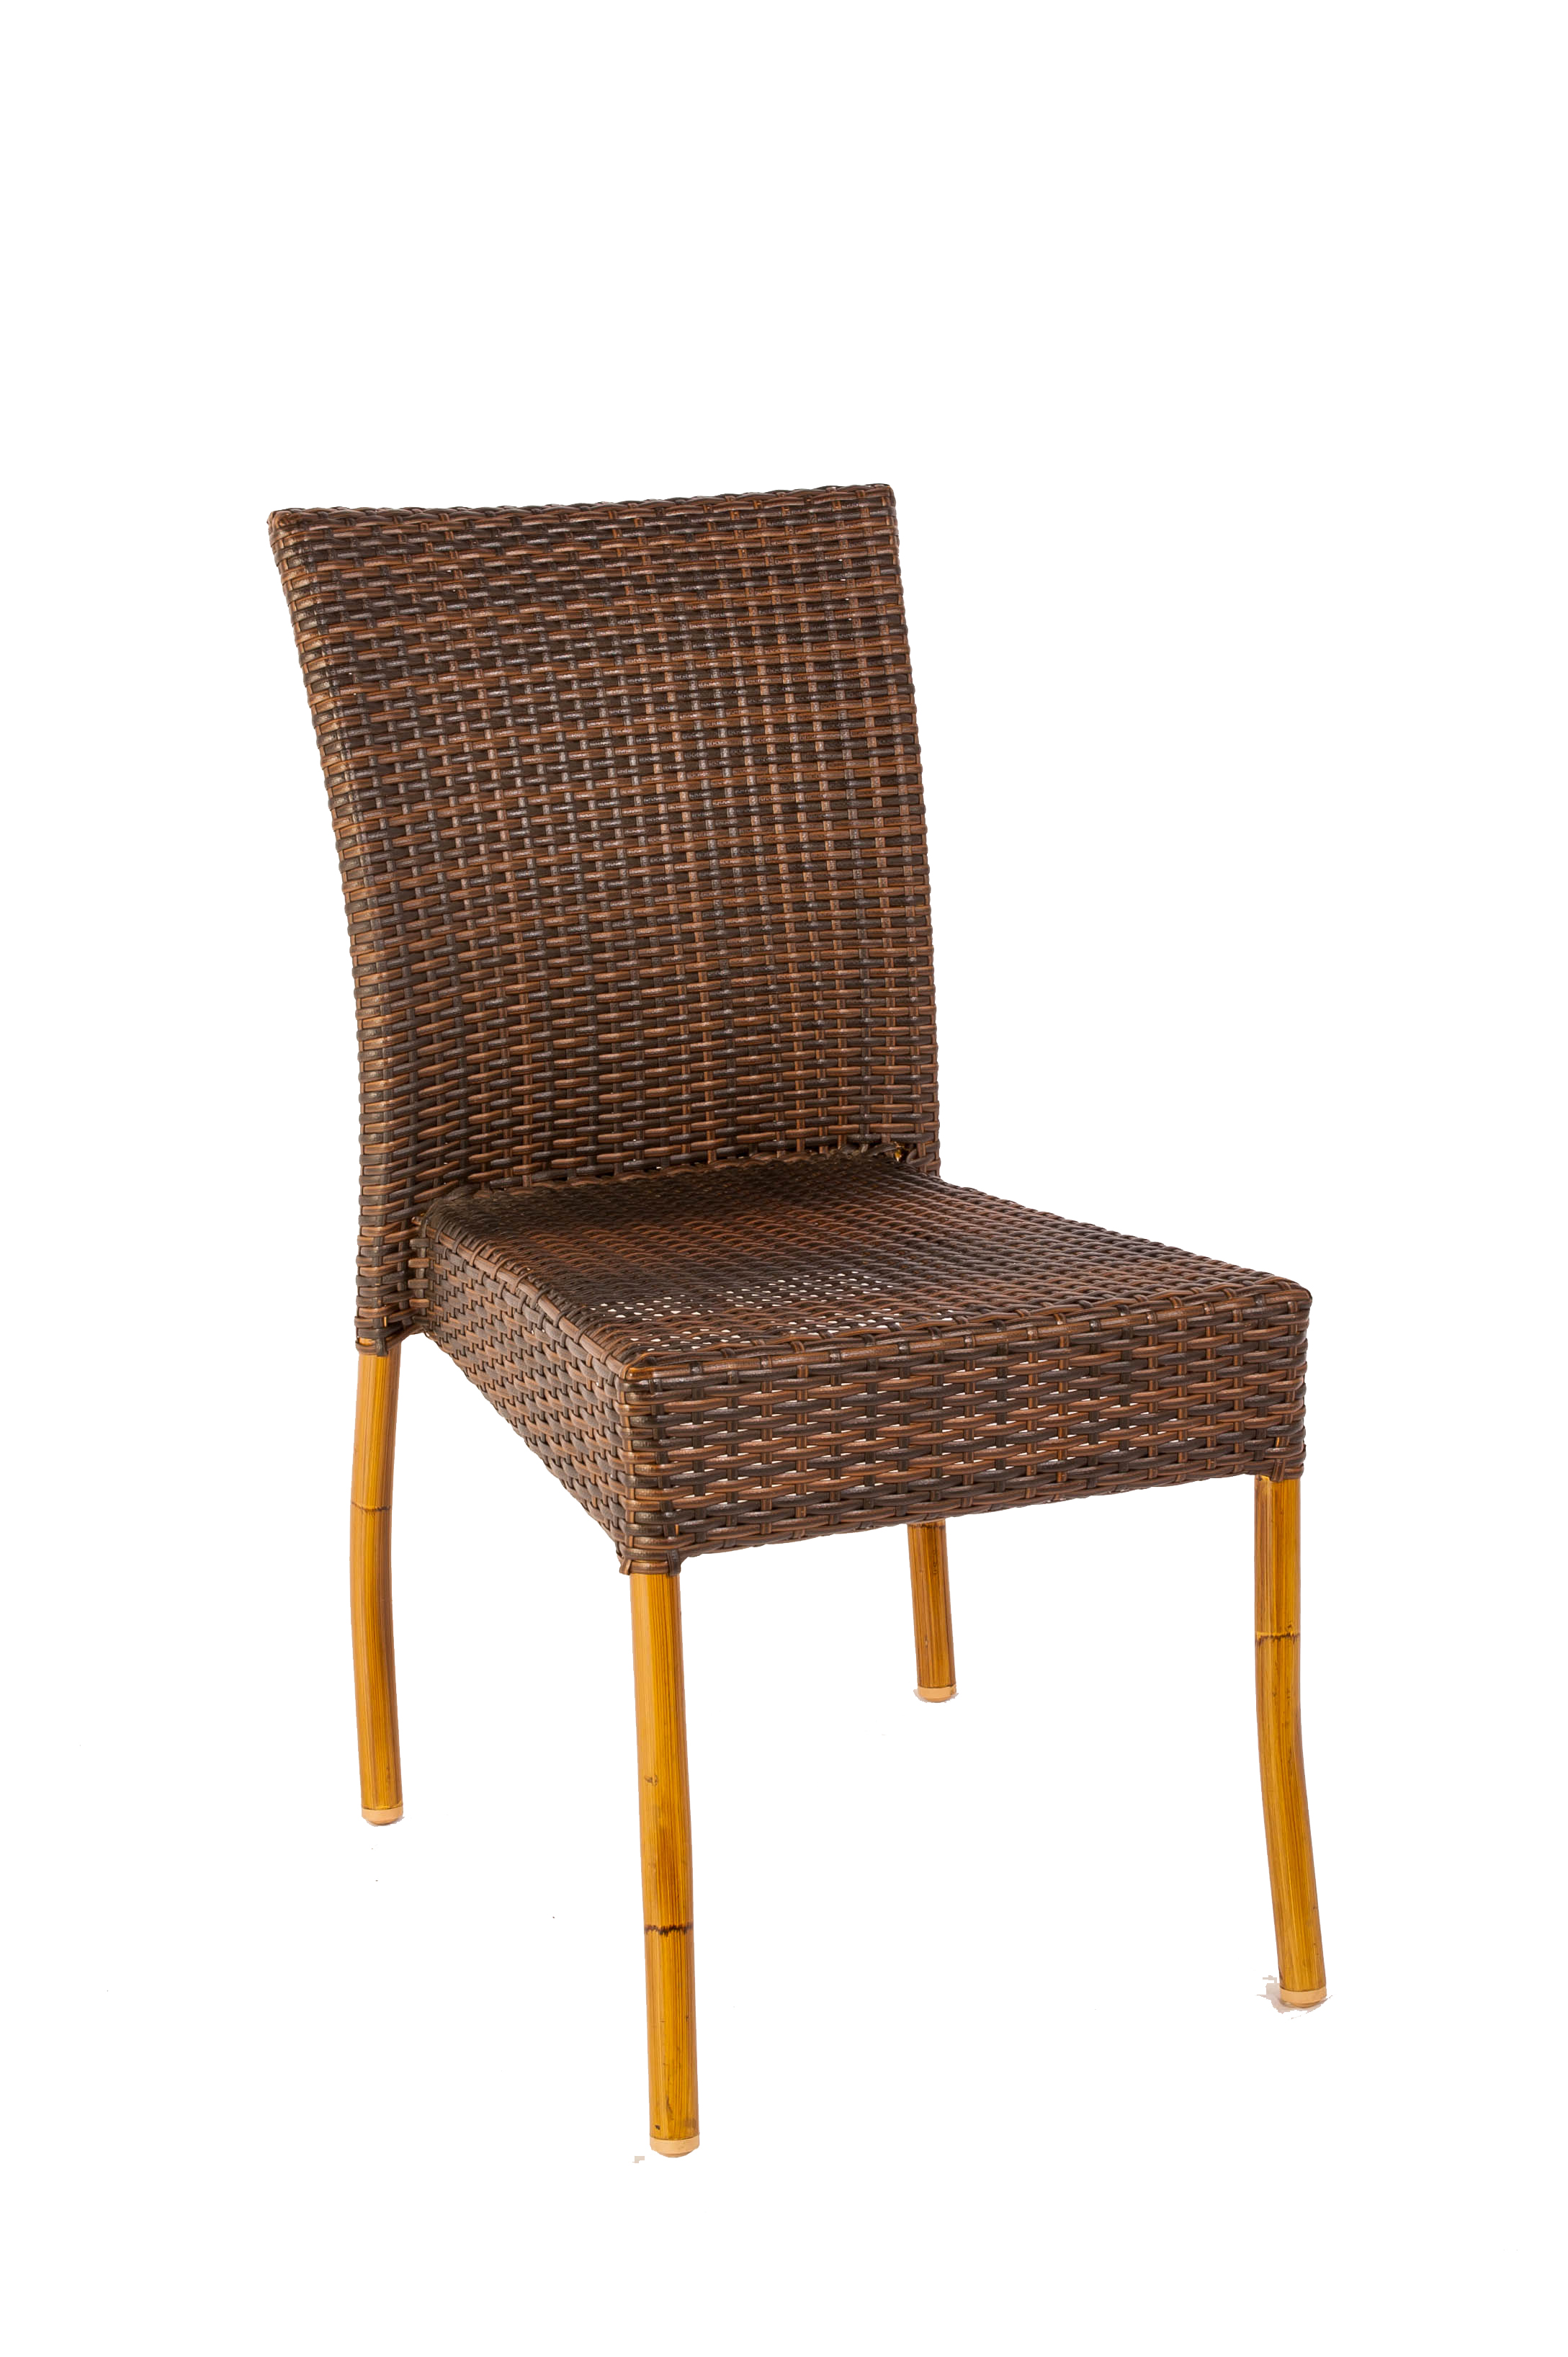 Wicker Side Chair Alverado Wicker Side Chair J Esps C Commercial Restaurant